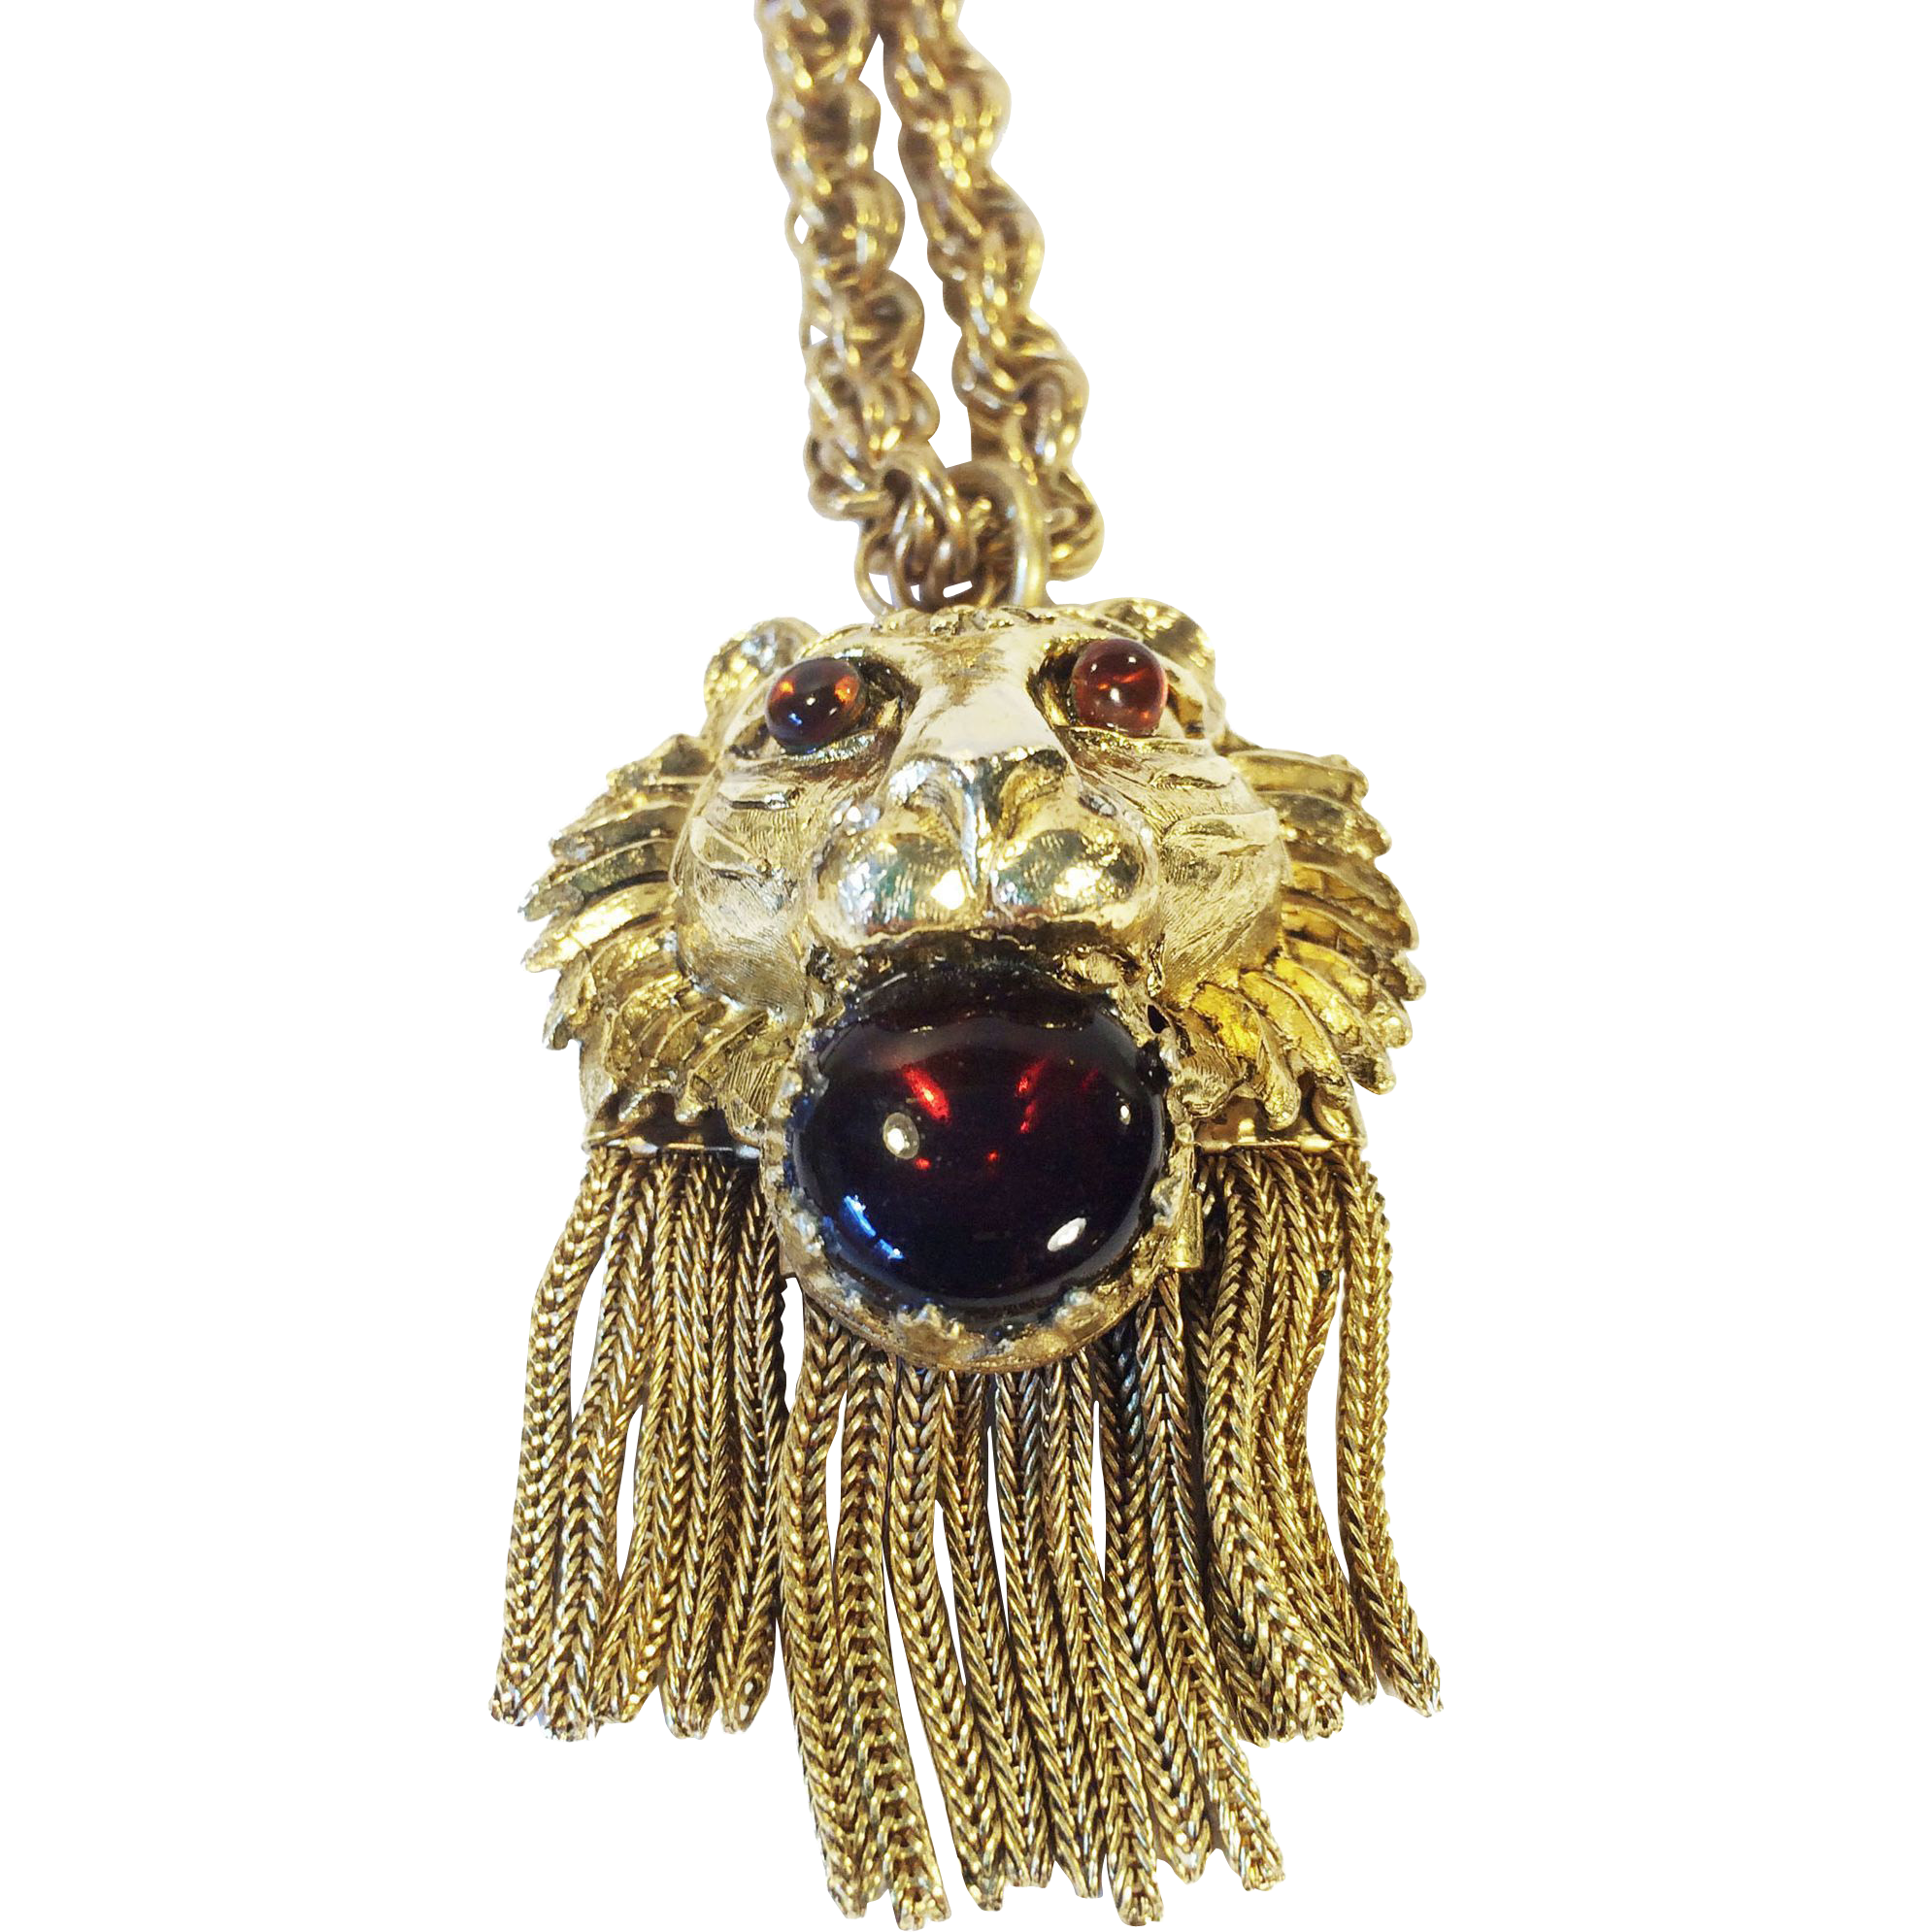 I Love My Lions Long Tasseled Pendant Necklace with Red Cabochon in his Mouth and Amber Eyes